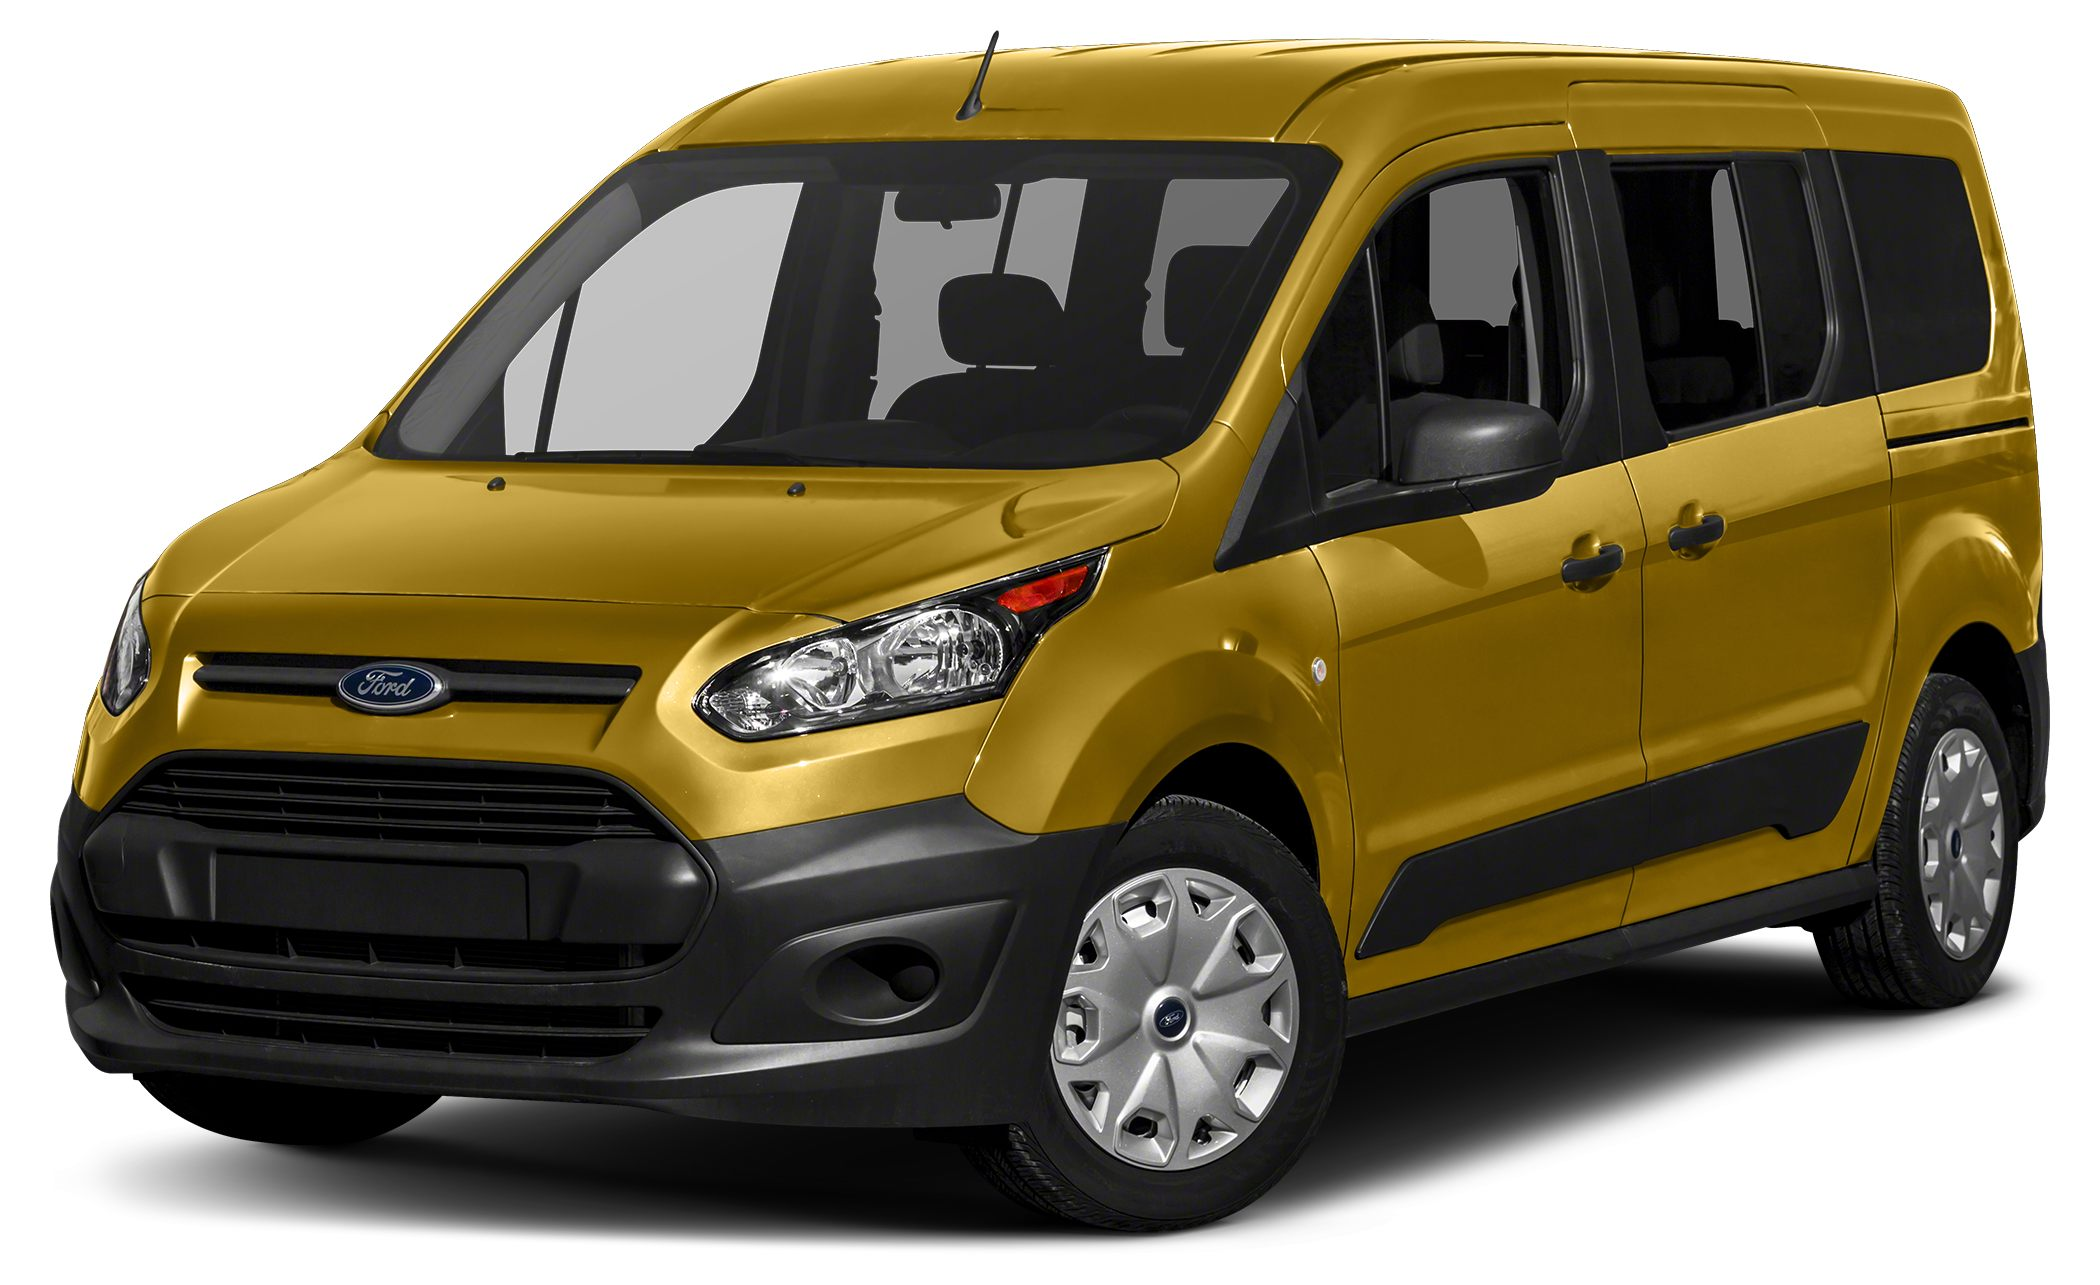 2014 Ford Transit Connect XLT CARFAX 1-Owner ONLY 22968 Miles XLT trim FUEL EFFICIENT 28 MPG H